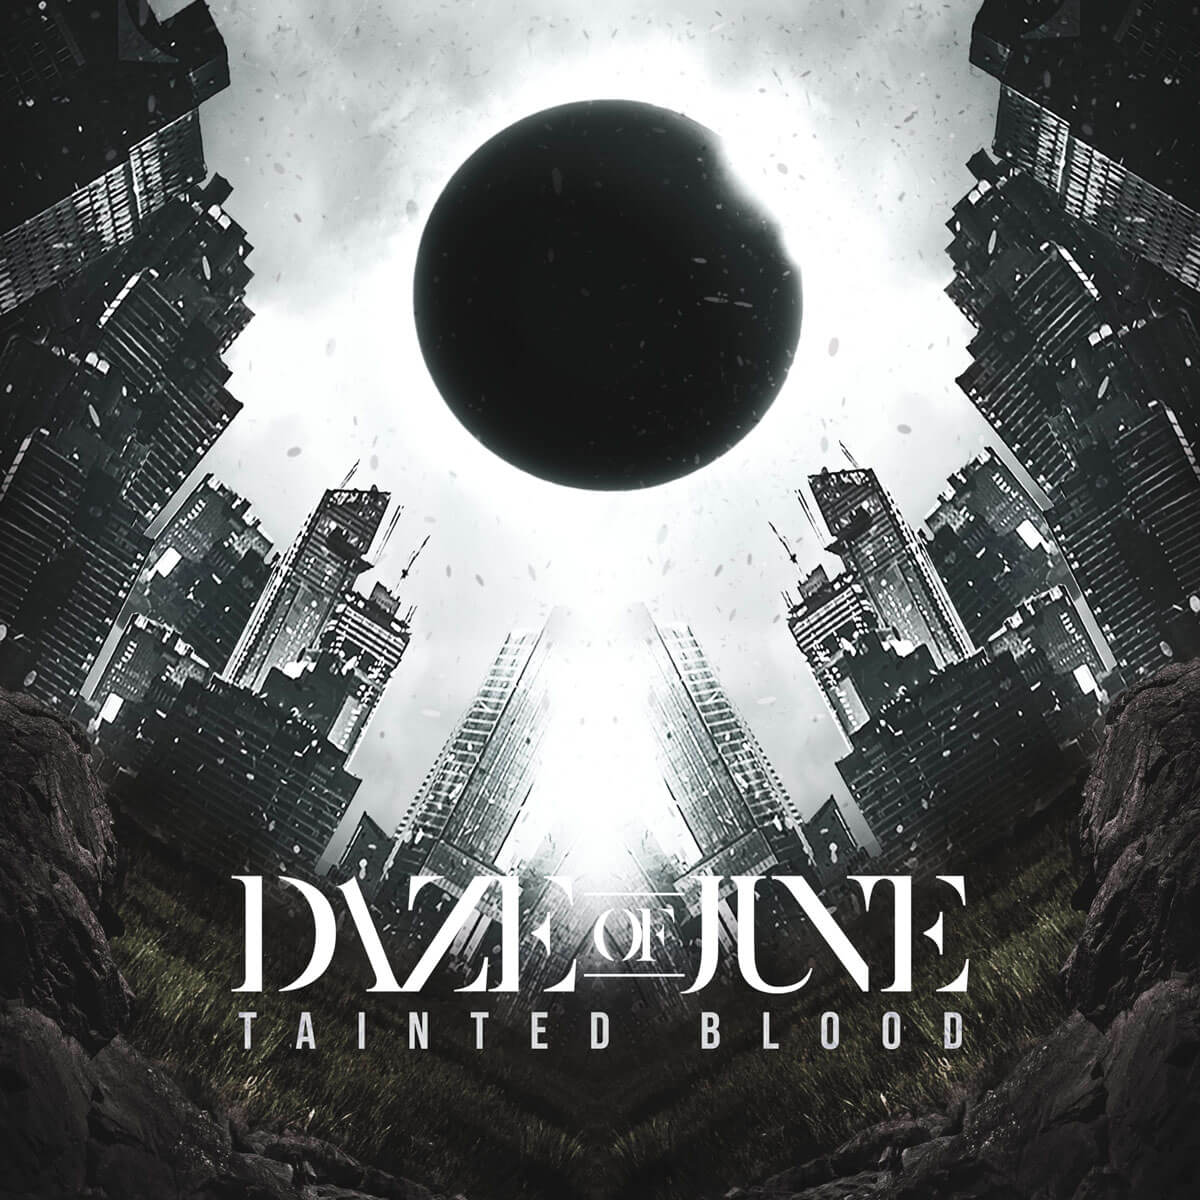 Daze of June – Tainted Blood